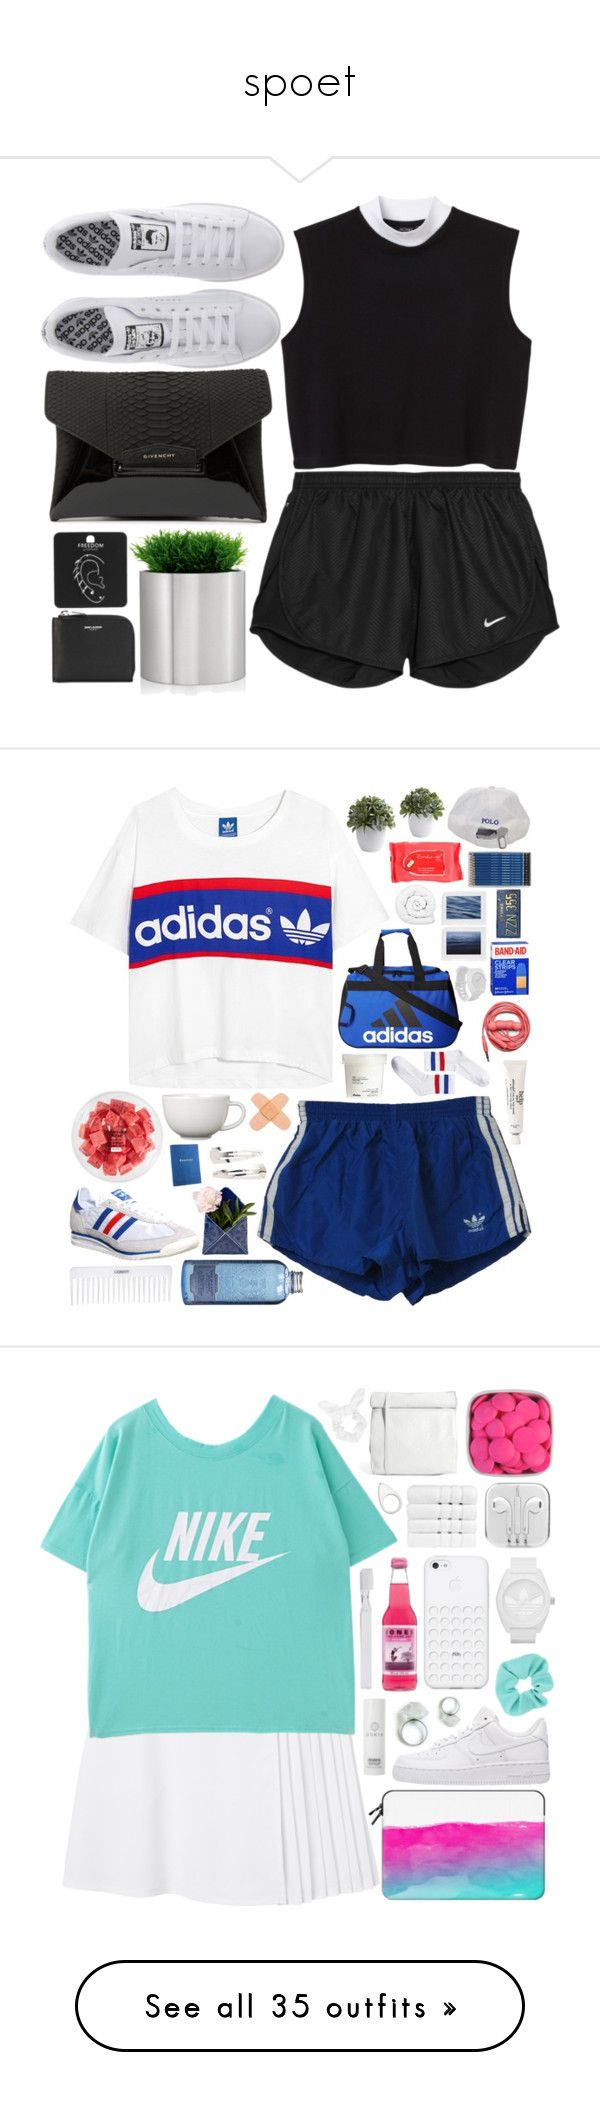 """""""spoet"""" by leilabas ❤ liked on Polyvore featuring NIKE, Monki, adidas, Givenchy, blomus, Topshop, Yves Saint Laurent, philosophy, adidas Originals and Nixon"""